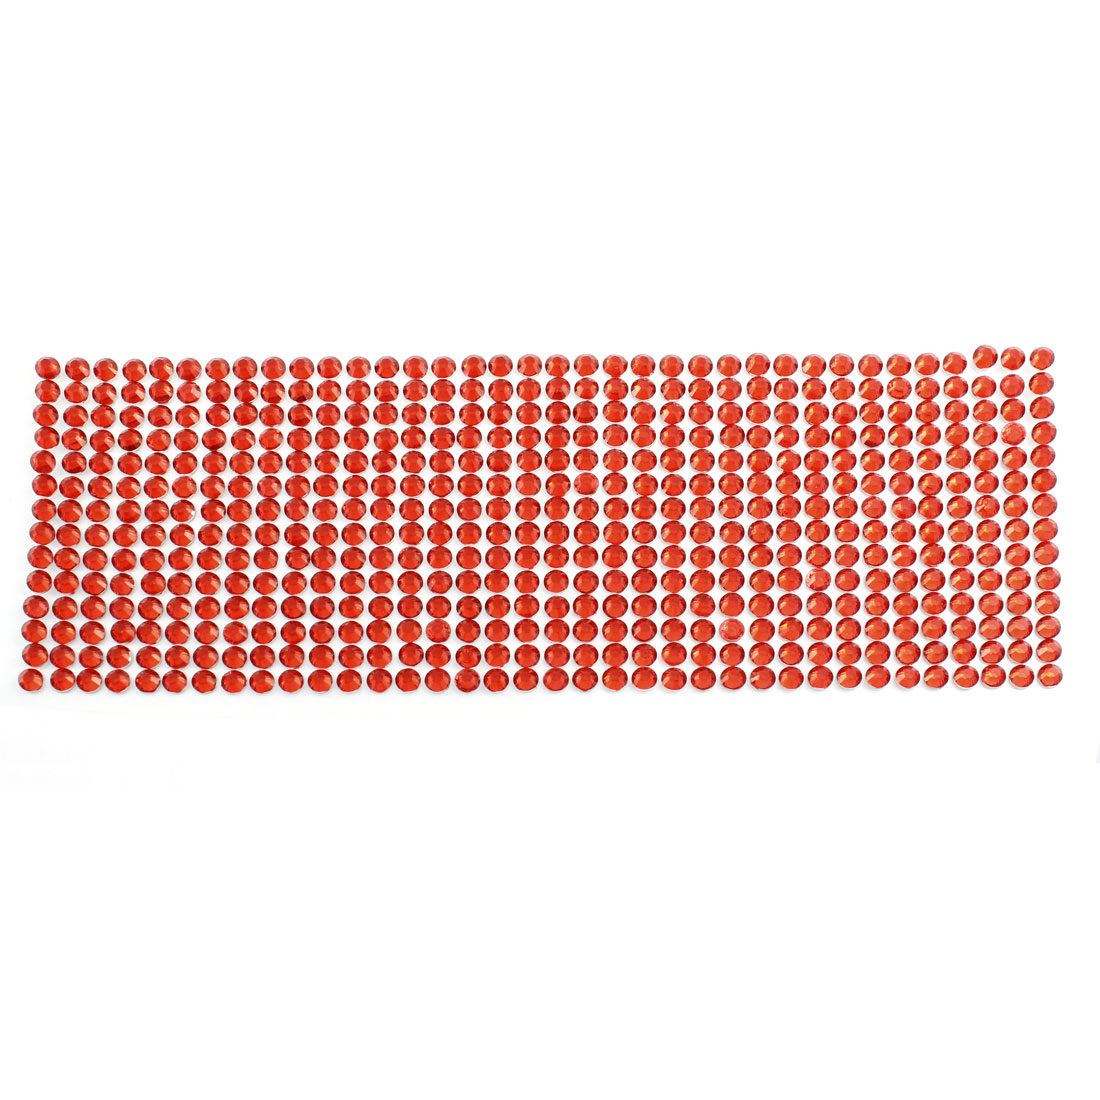 Red Self Adhesive Bling Crystal Rhinestone Decorating DIY Stickers 255mm x 90mm